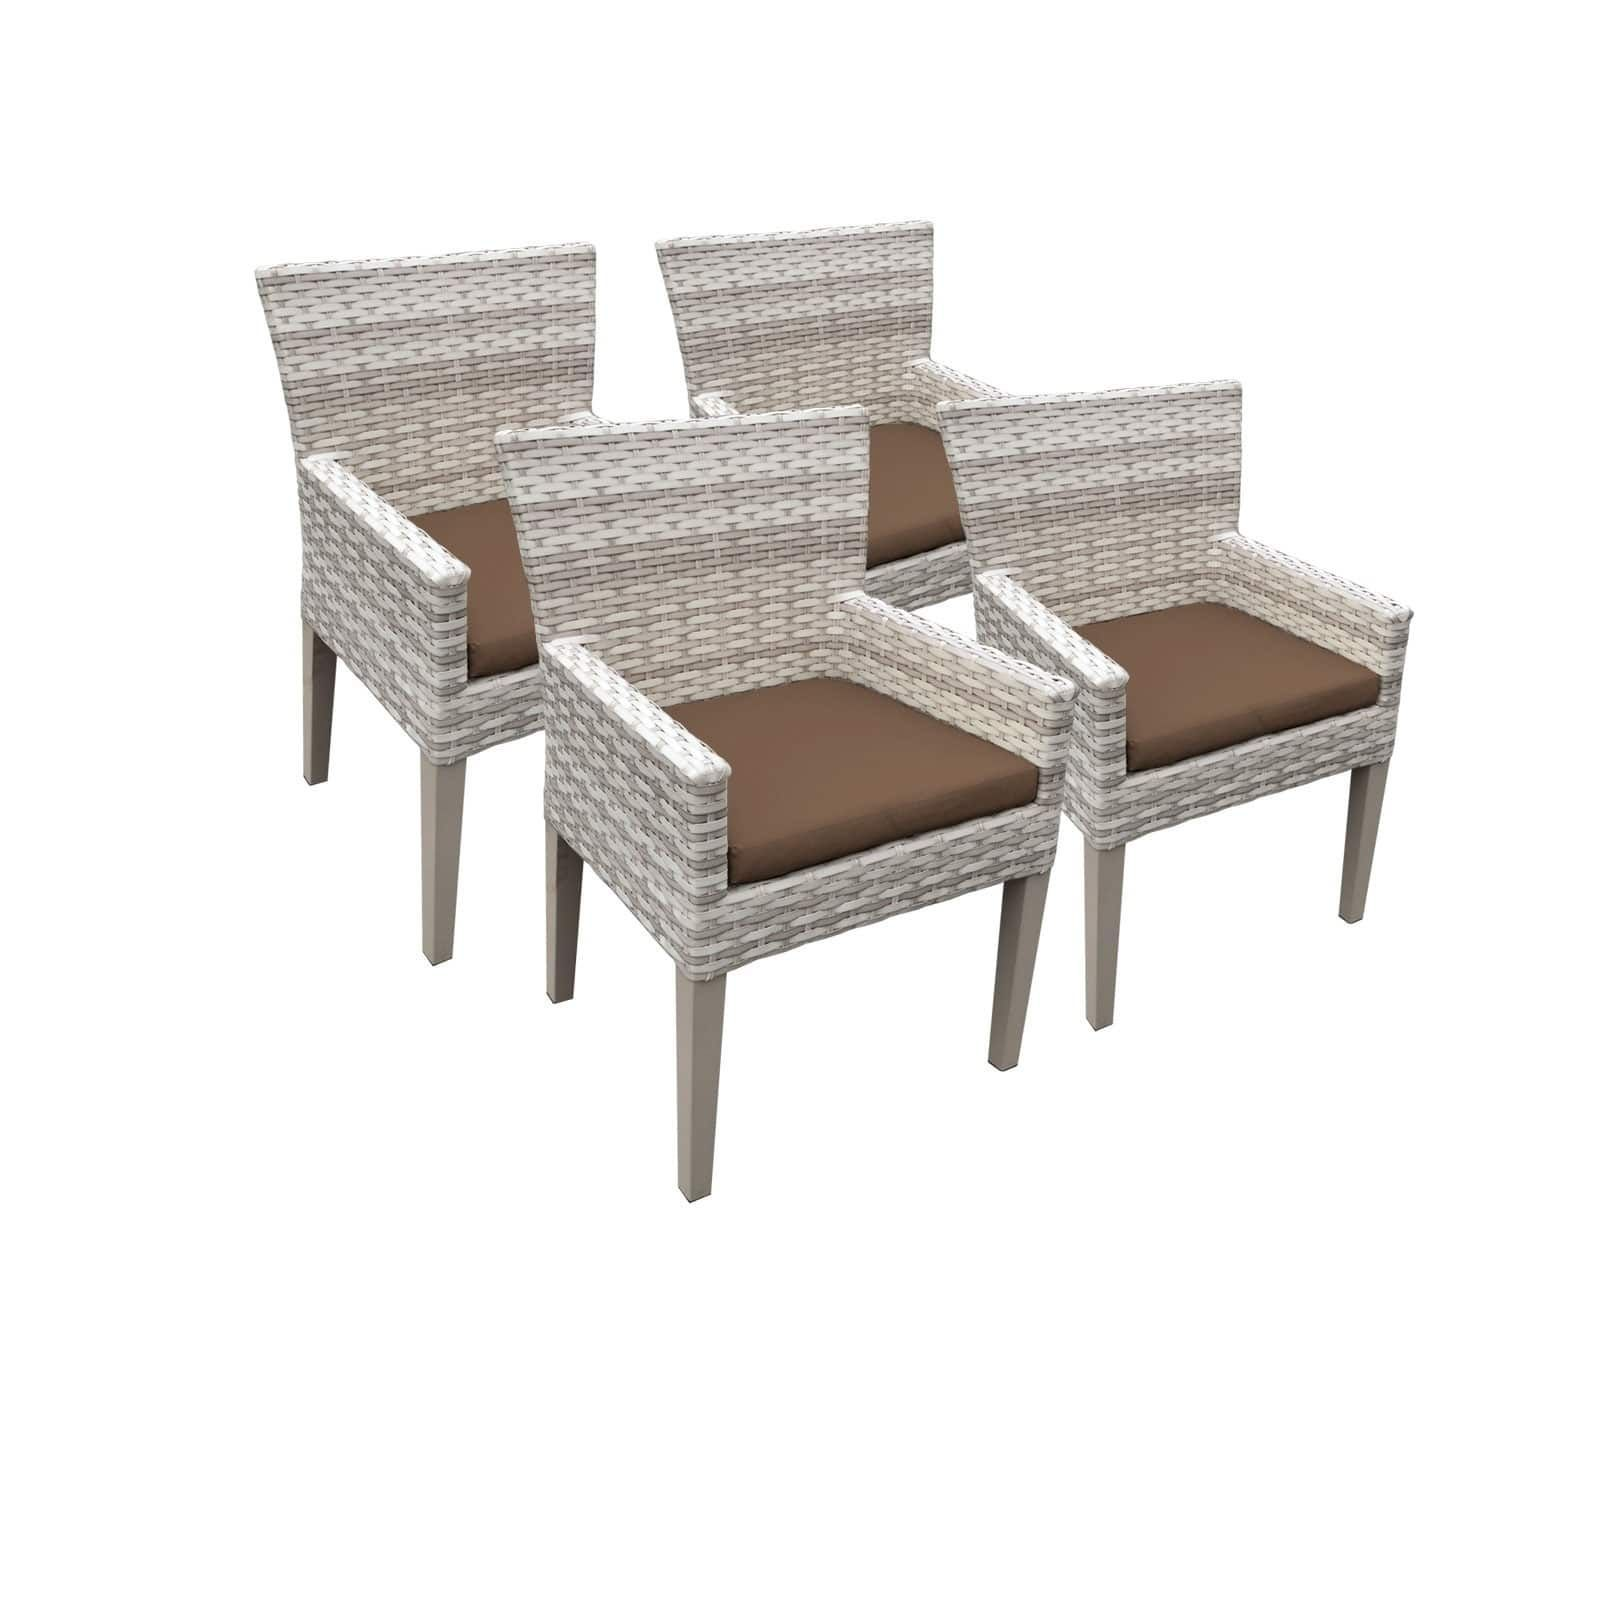 Catamaran Outdoor Patio Wicker Dining Chairs with Arms and Seat